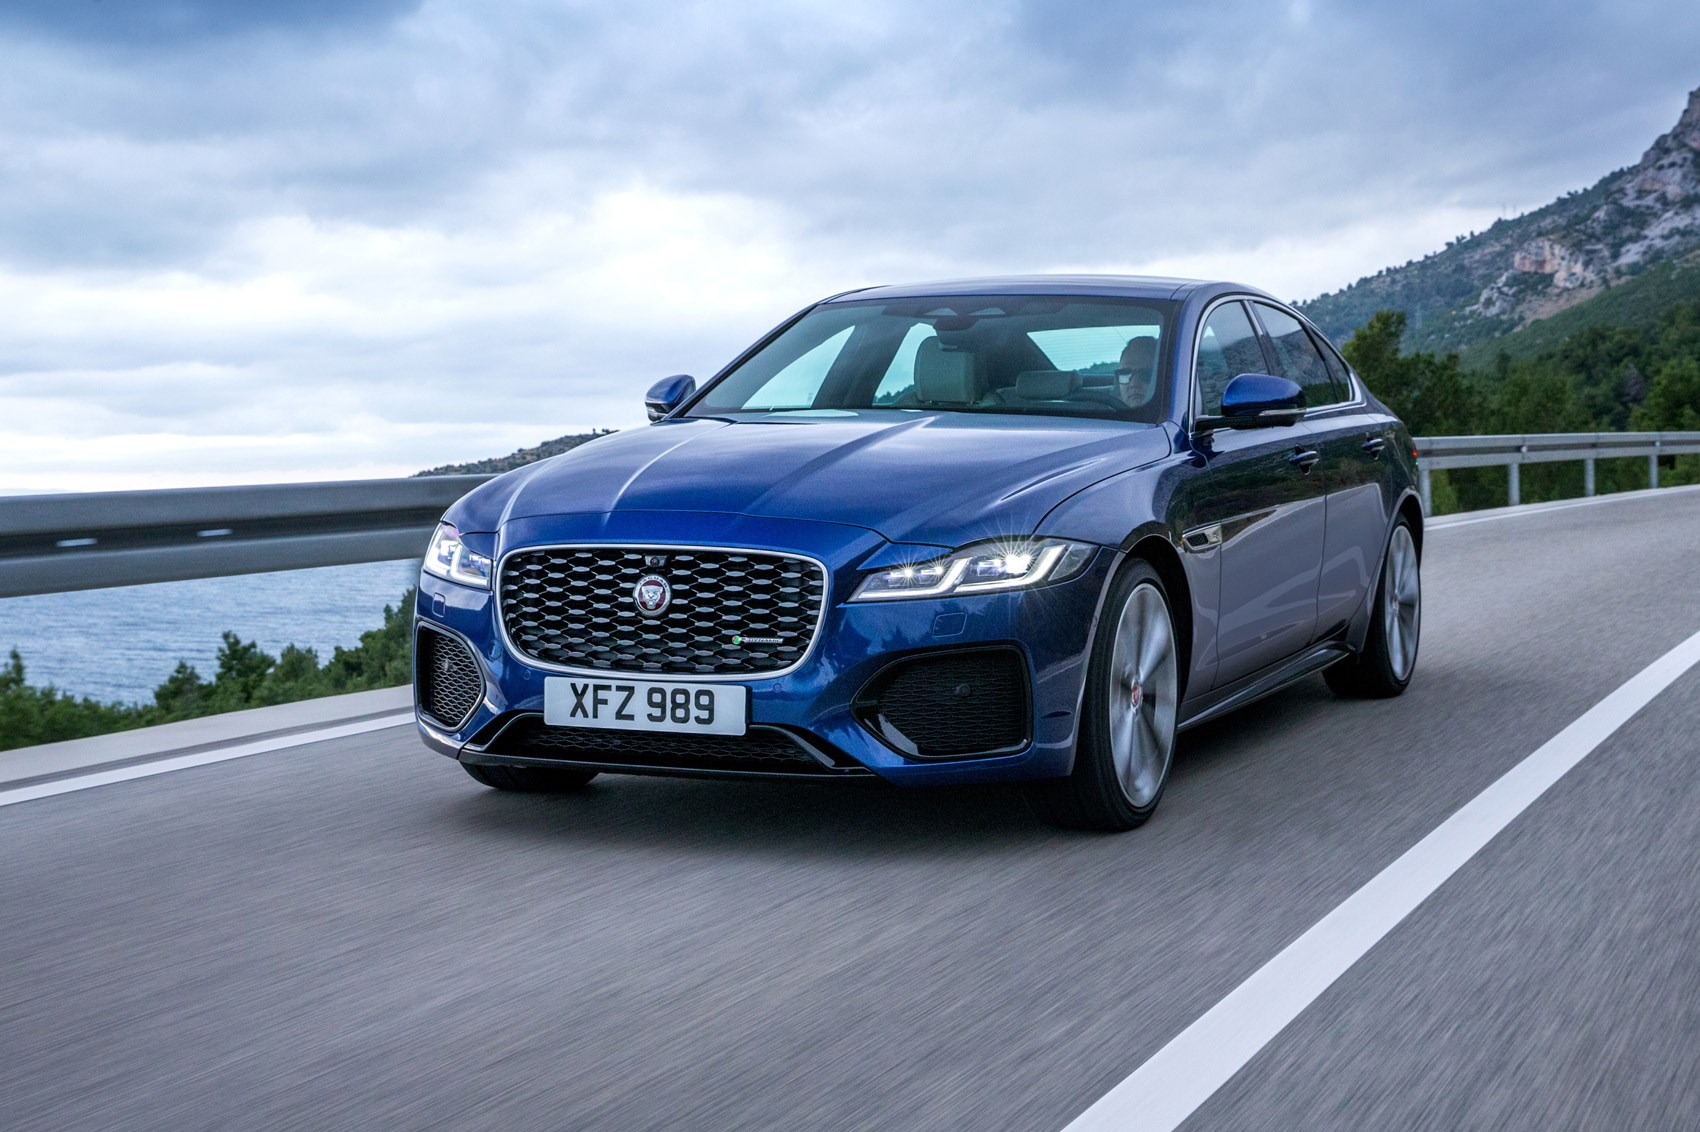 New-look Jaguar XF saloon and Sportbrake arrives with lower entry price | CAR Magazine